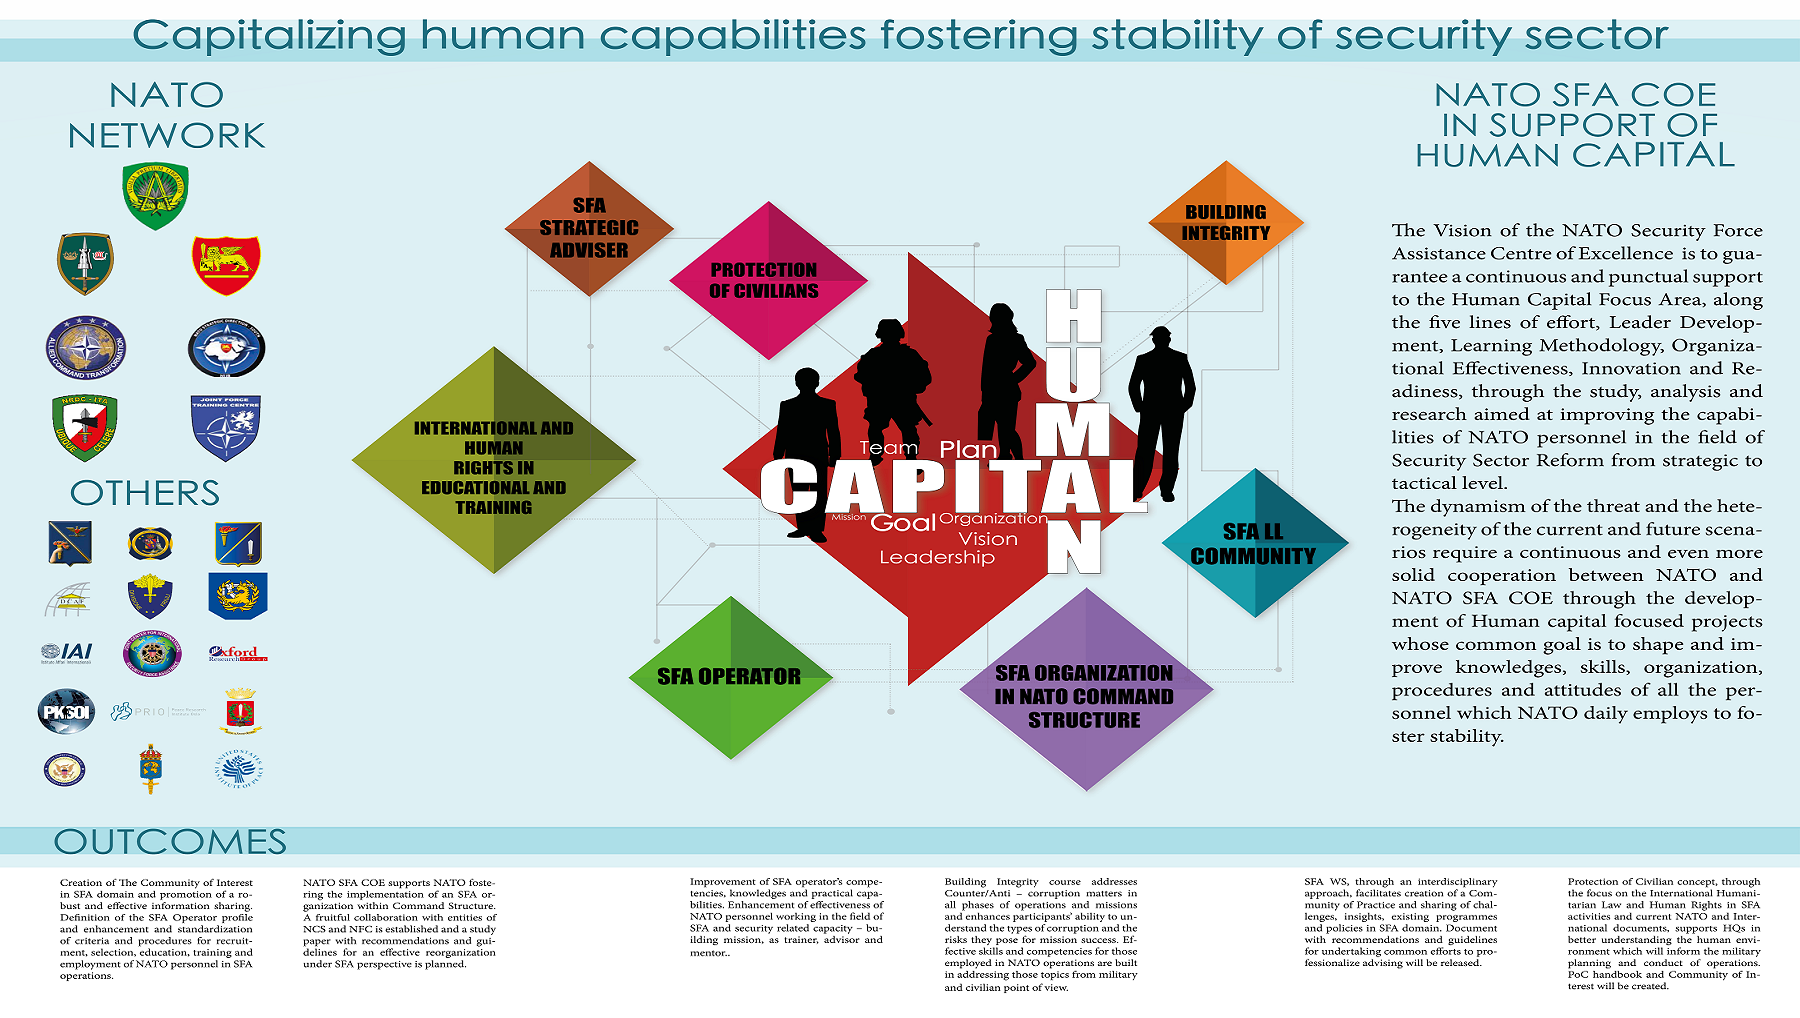 NATO SFA COE IN SUPPORT OF HUMAN CAPITAL